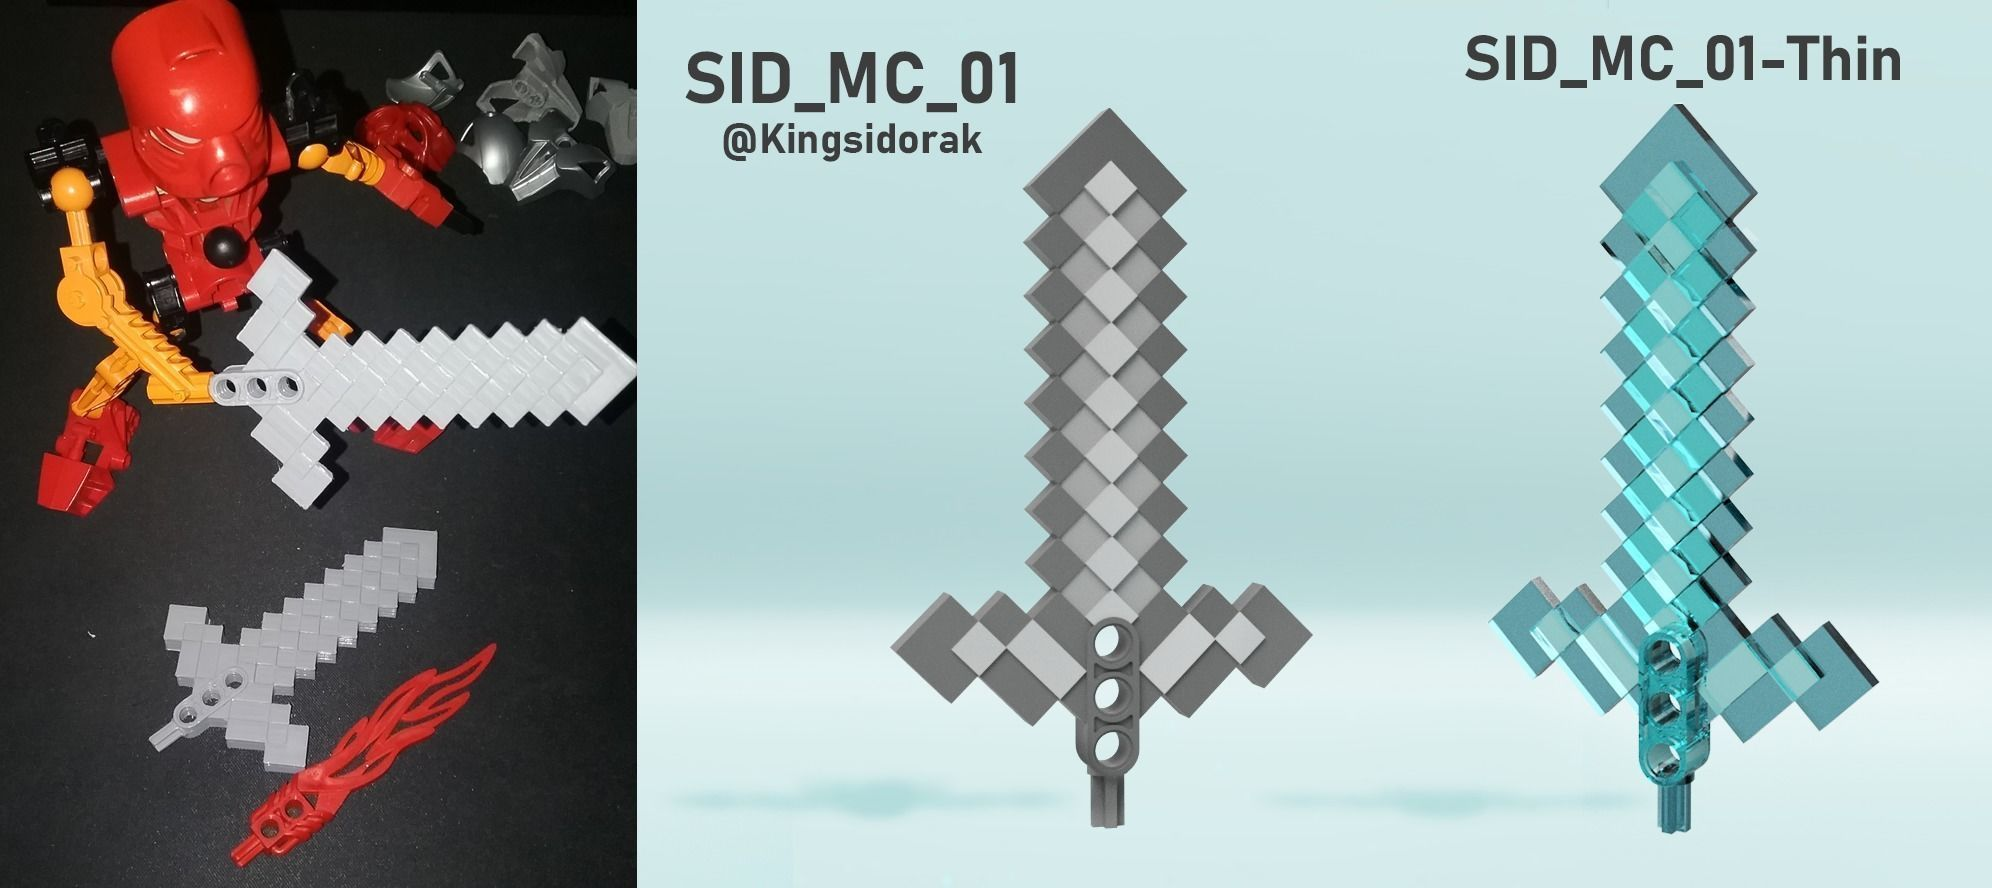 image about Minecraft Sword Printable identified as Lego BIONICLE Minecraft Sword 3D Print Design